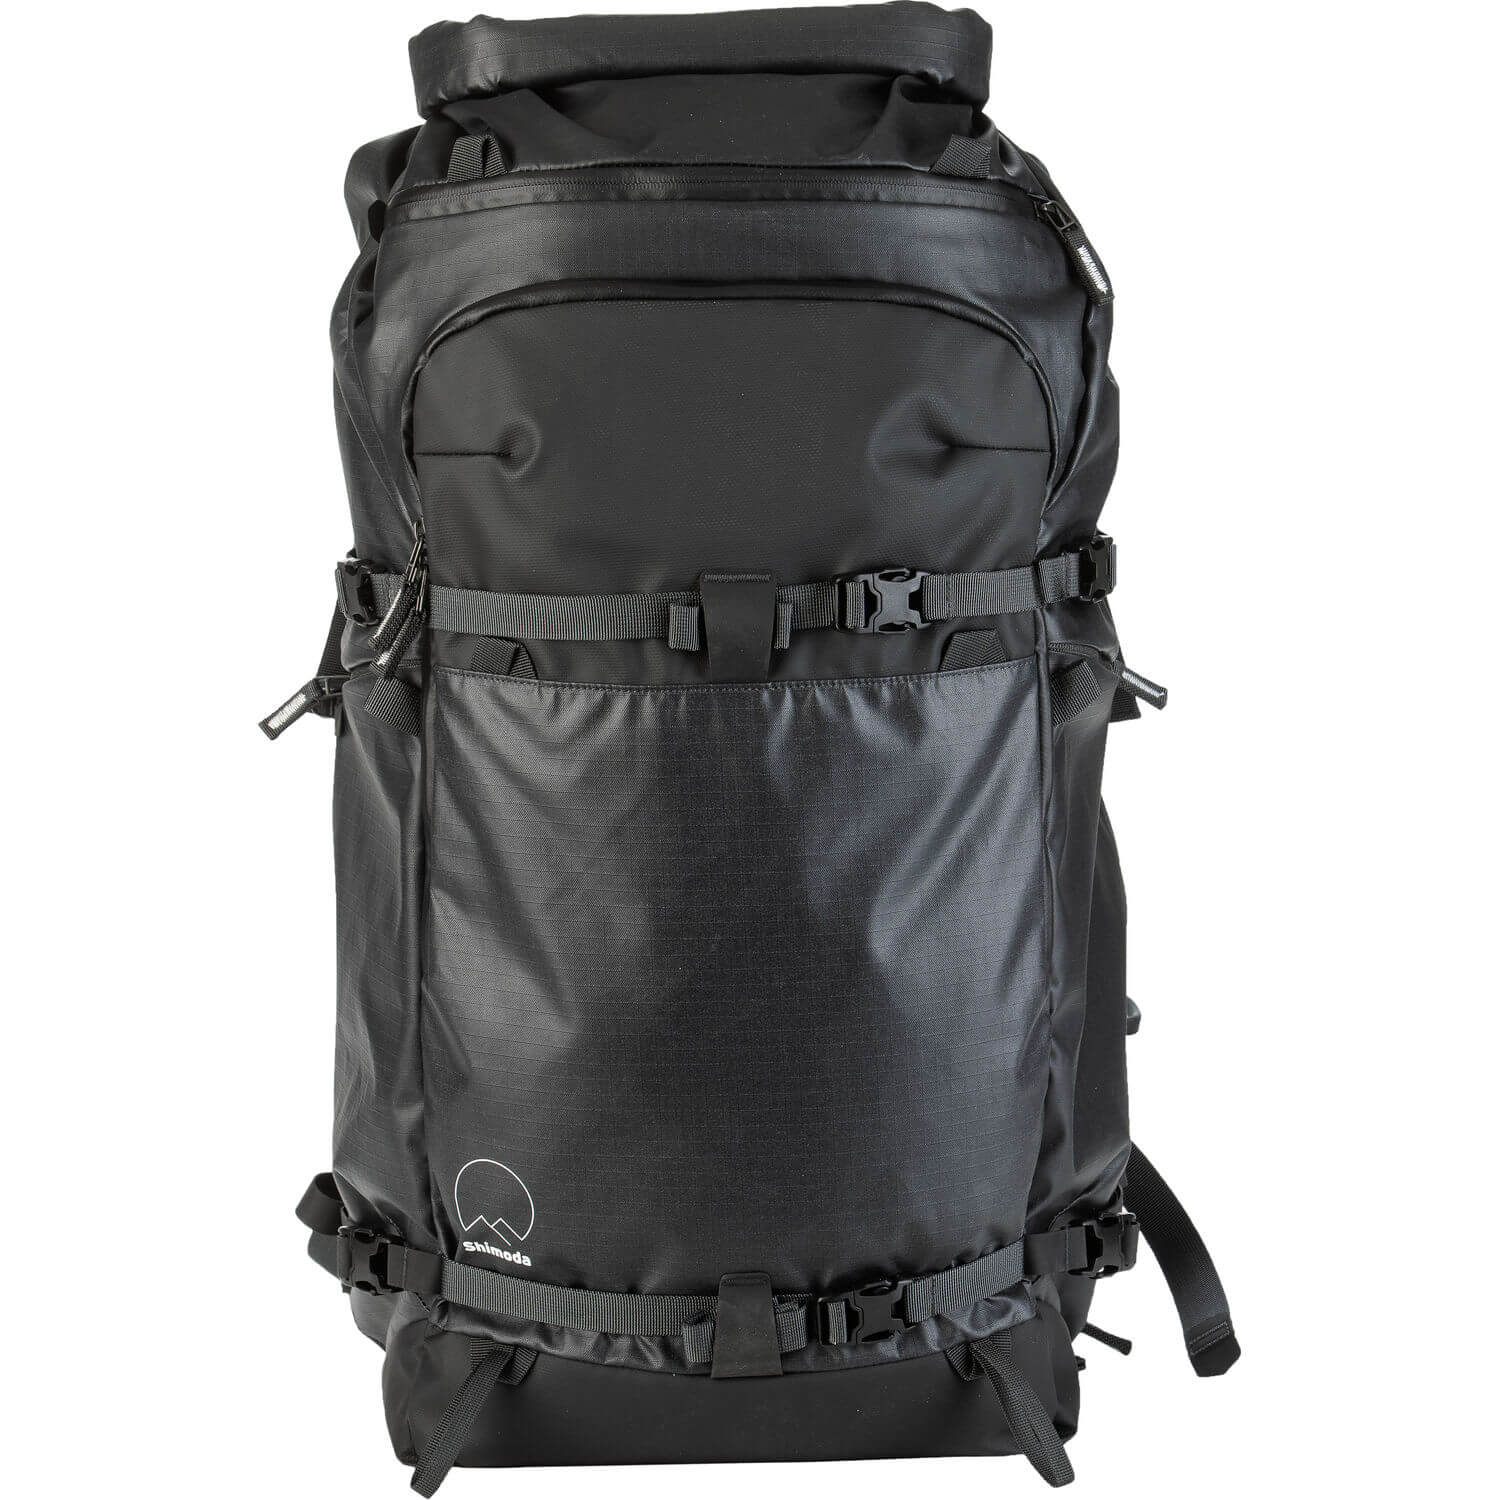 Shimoda Designs Action X70 Backpack Starter Kit with X-Large DV Core Unit Black